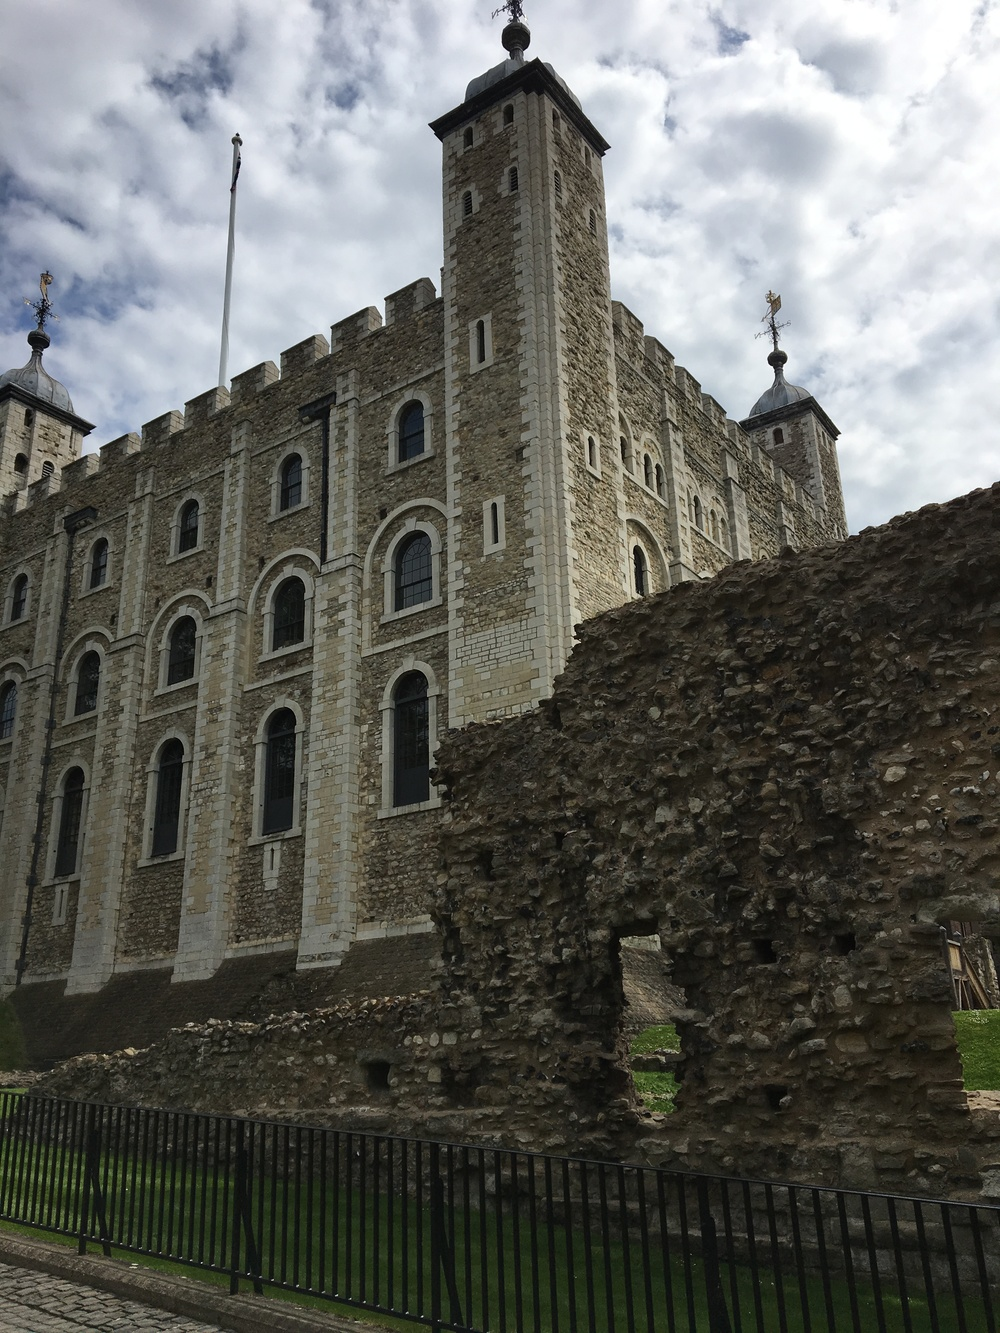 We prioritized a morning at the Tower of London with a docent from Context Tours, where we could experience history, architecture and the beautiful crown jewels.